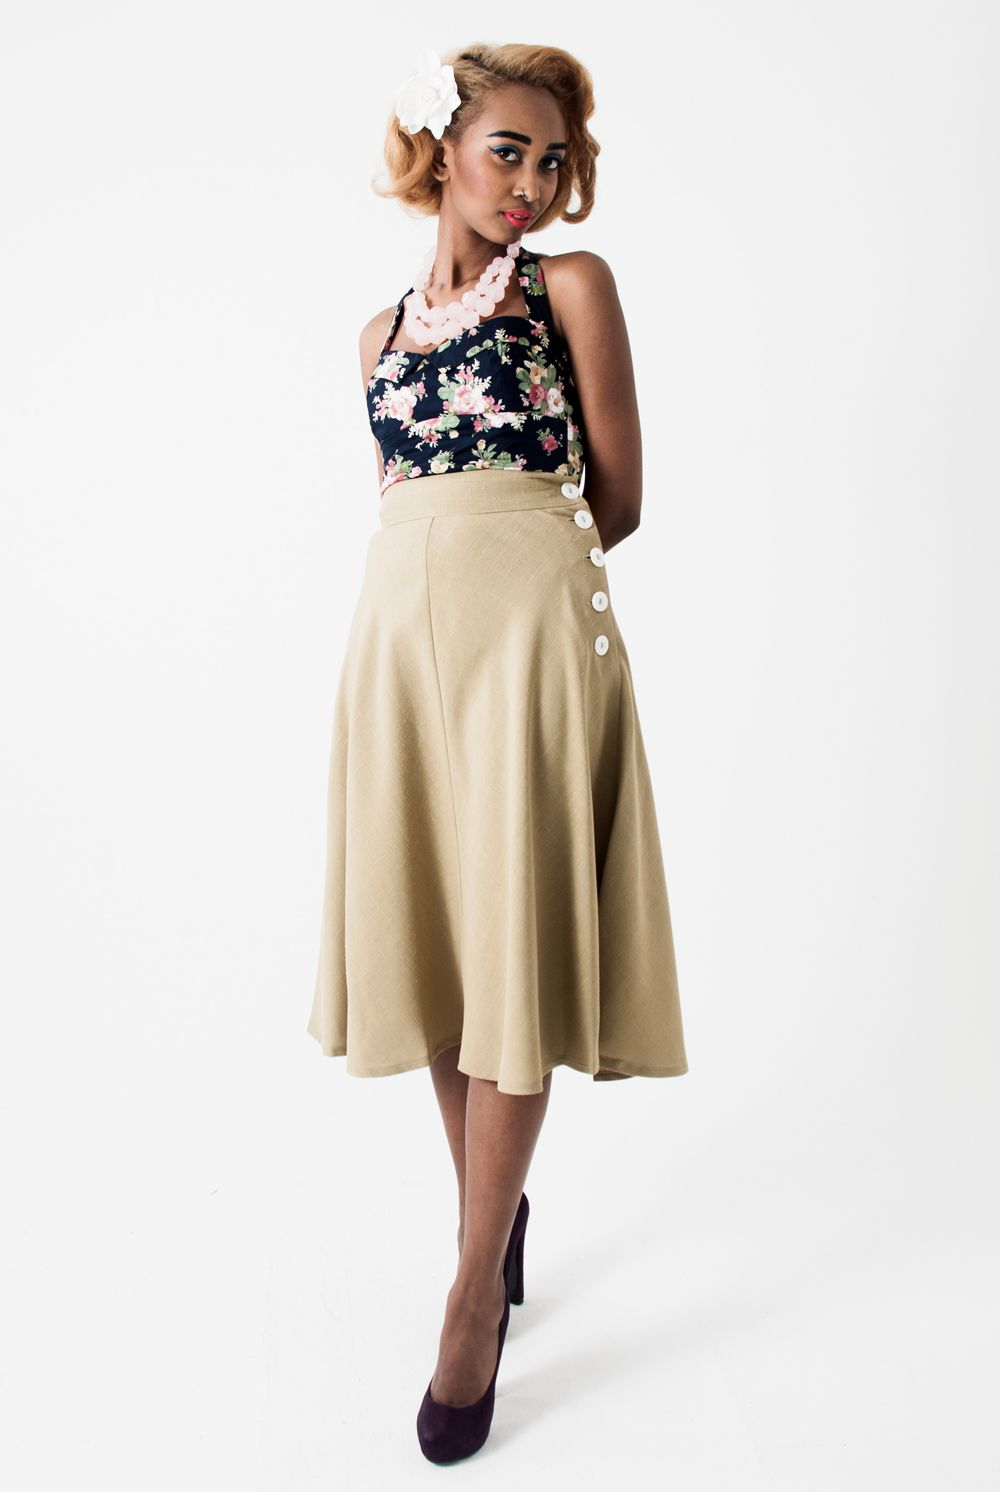 Tara Starlet 1940s 40s Style: Khaki Dancing Skirt 40s 70s Seventies Does Forties Style A